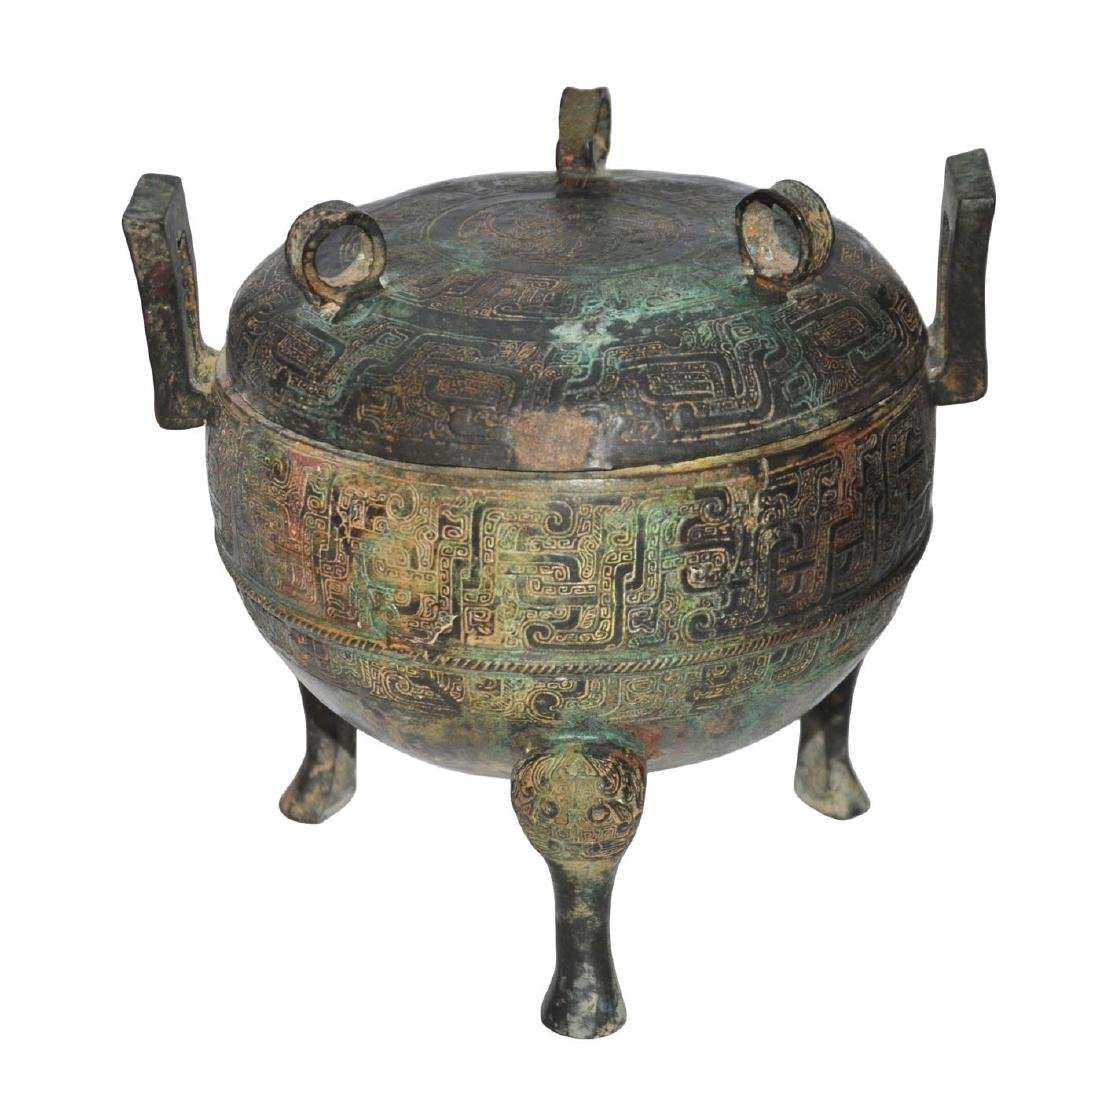 Warring States, Bronze Ritual Tripod Vessel and Cover,